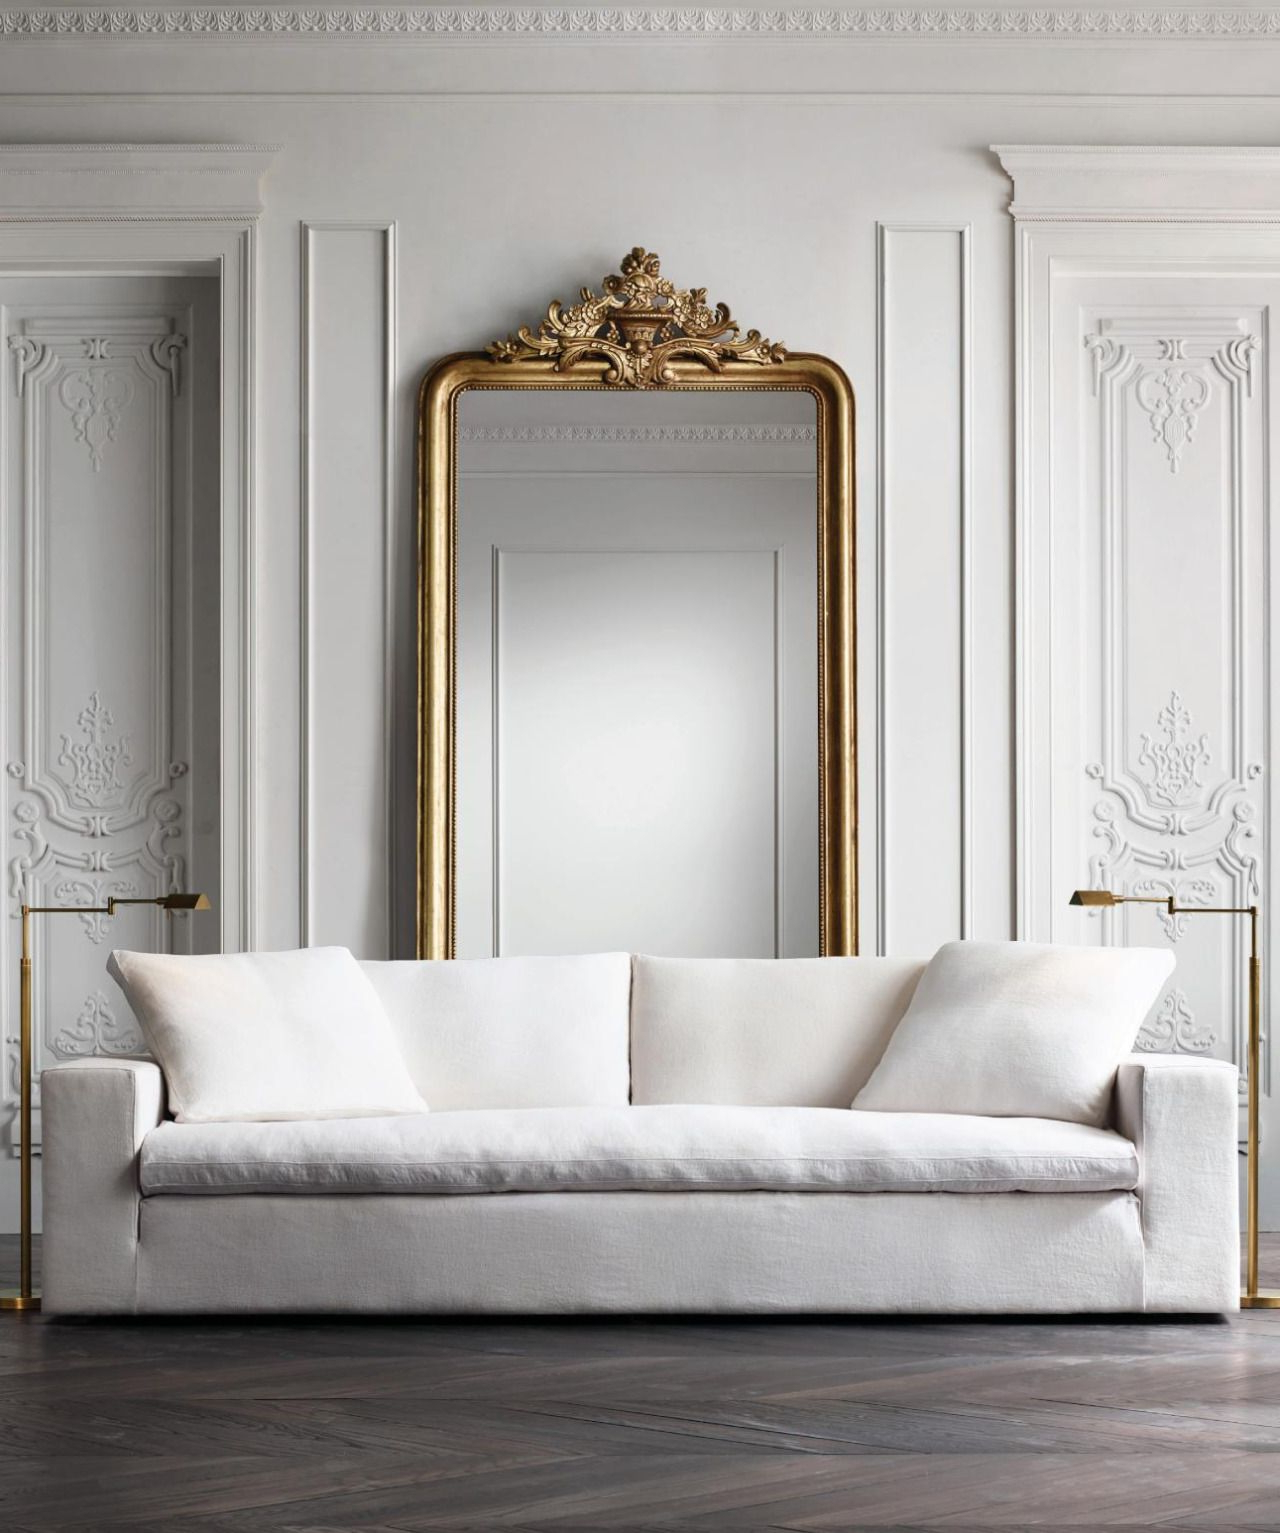 Stunning Wall Mirror Designs For Your Living Room Decor Pertaining To Trendy Stunning Wall Mirrors (View 12 of 20)